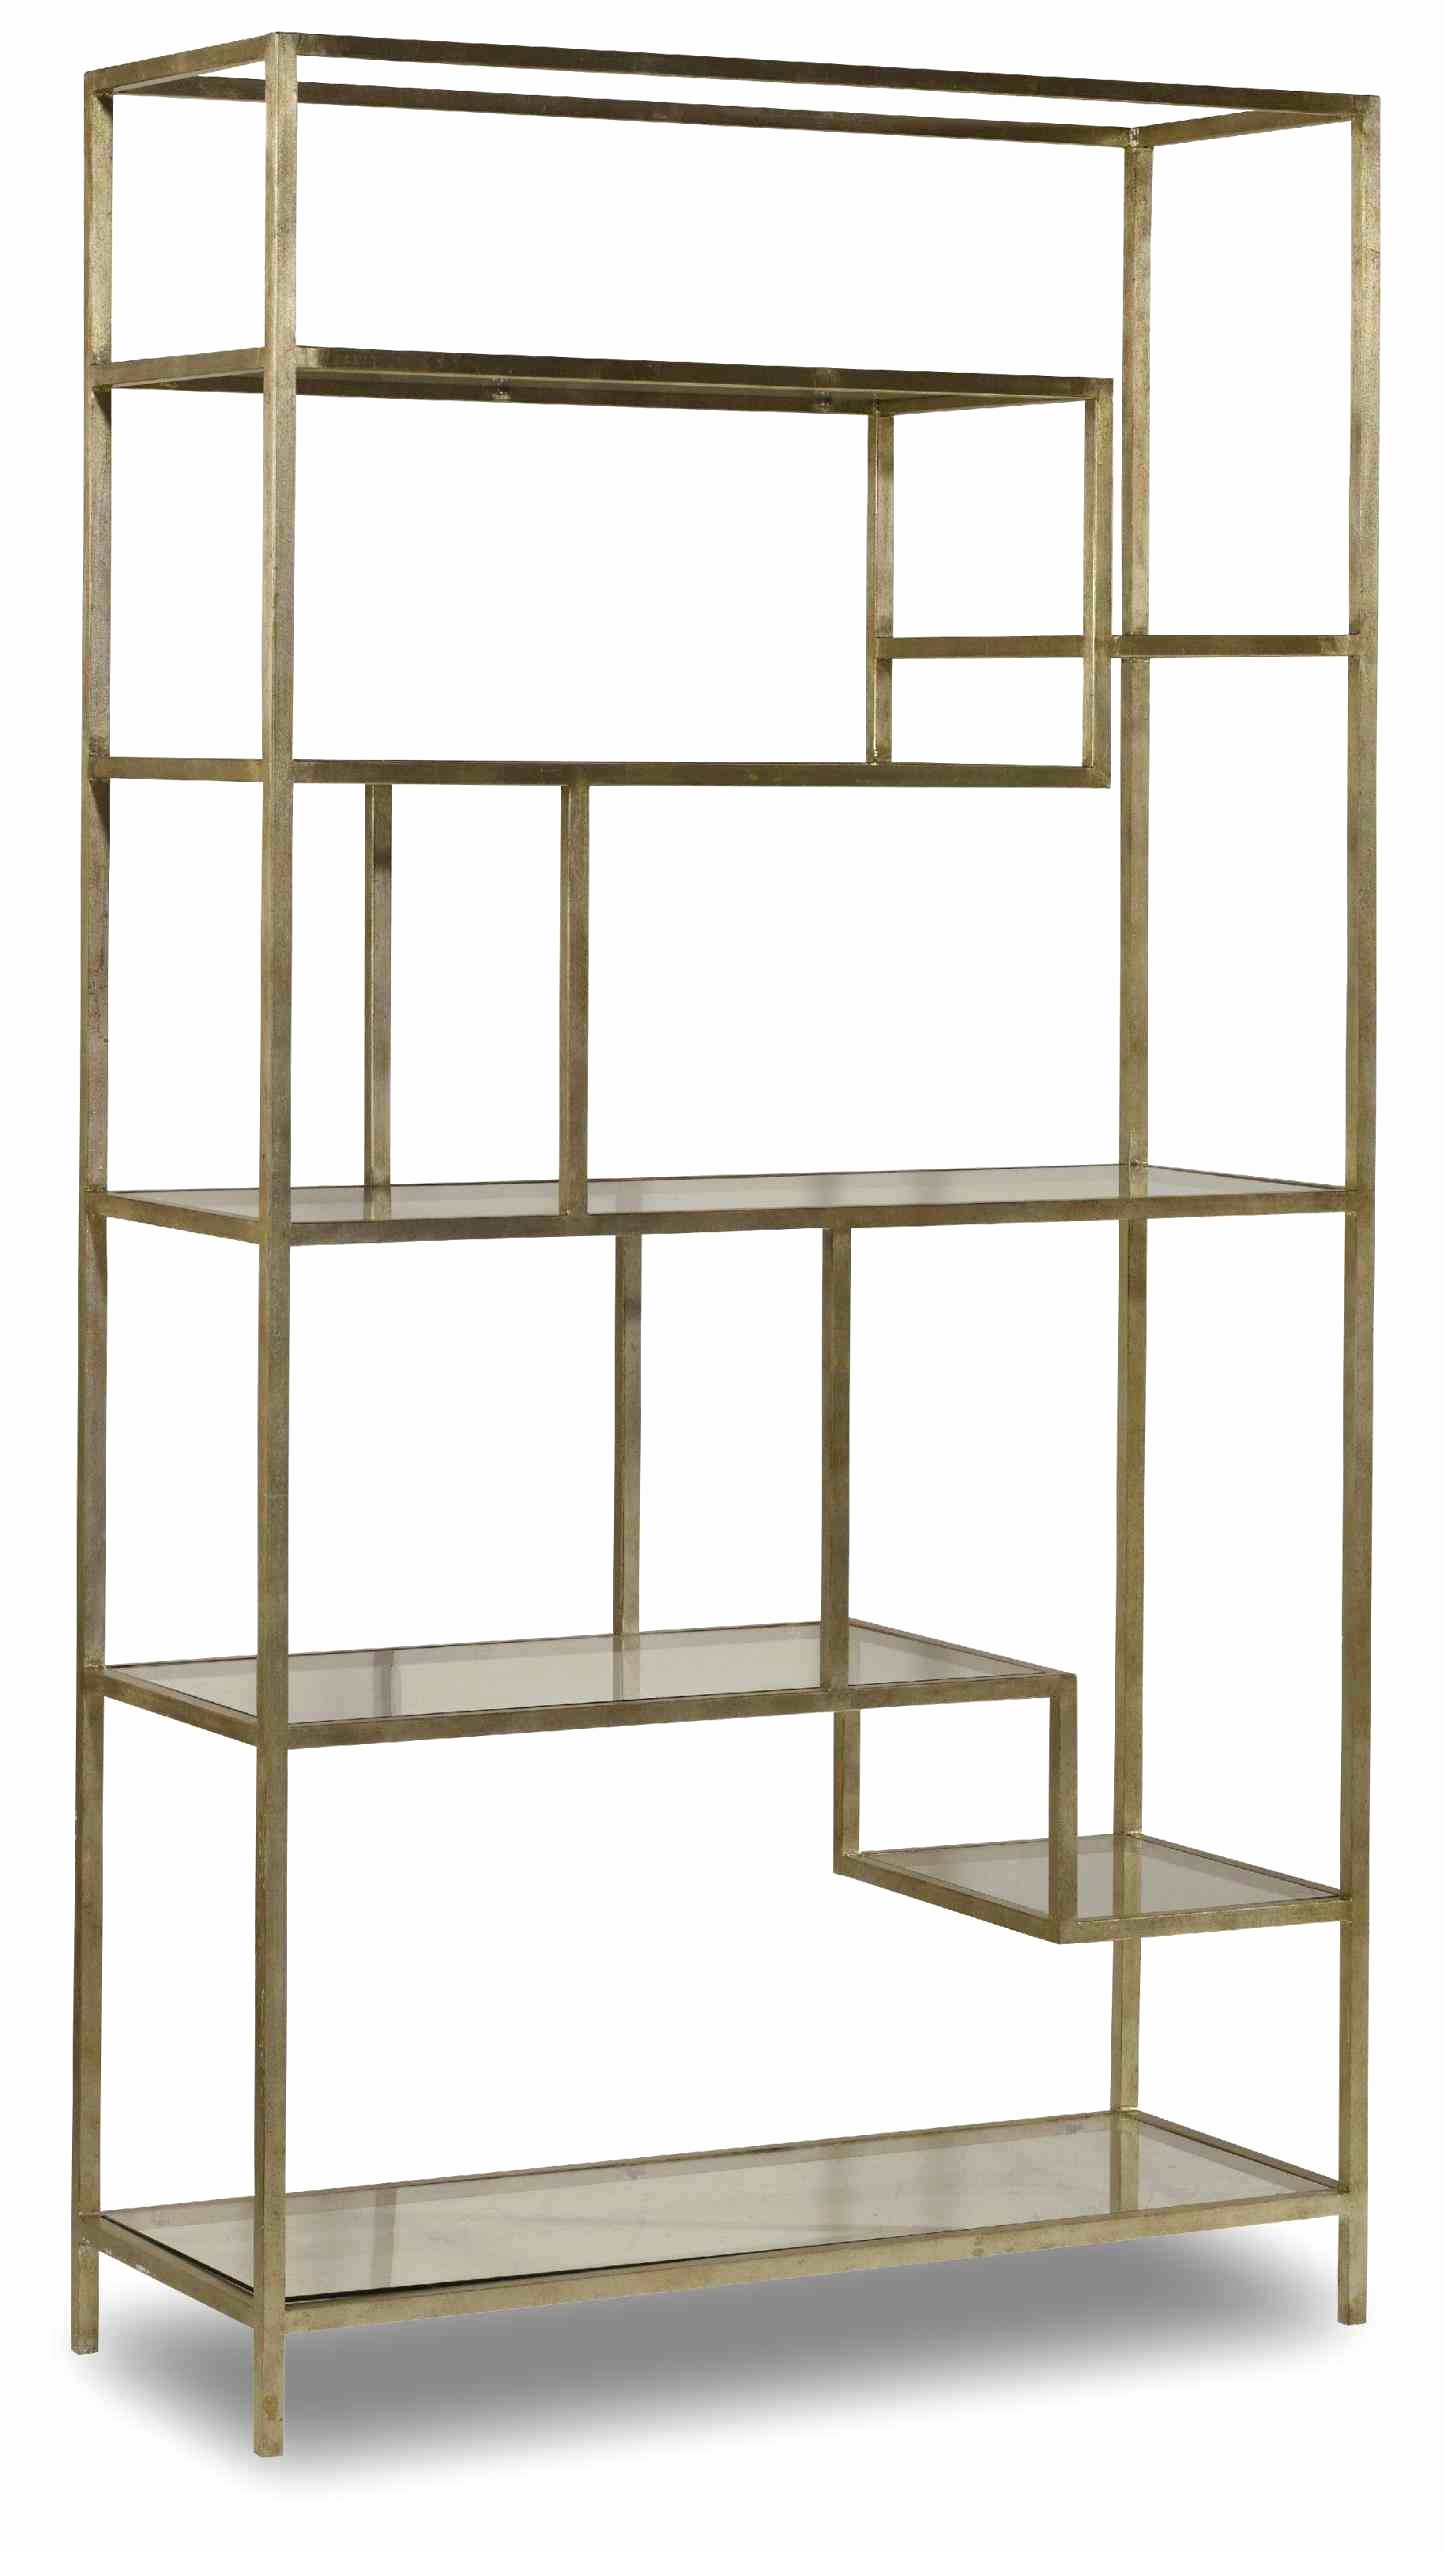 castorama fond de hotte meilleur de photos castorama etagere bois beau etagere en verre sur. Black Bedroom Furniture Sets. Home Design Ideas